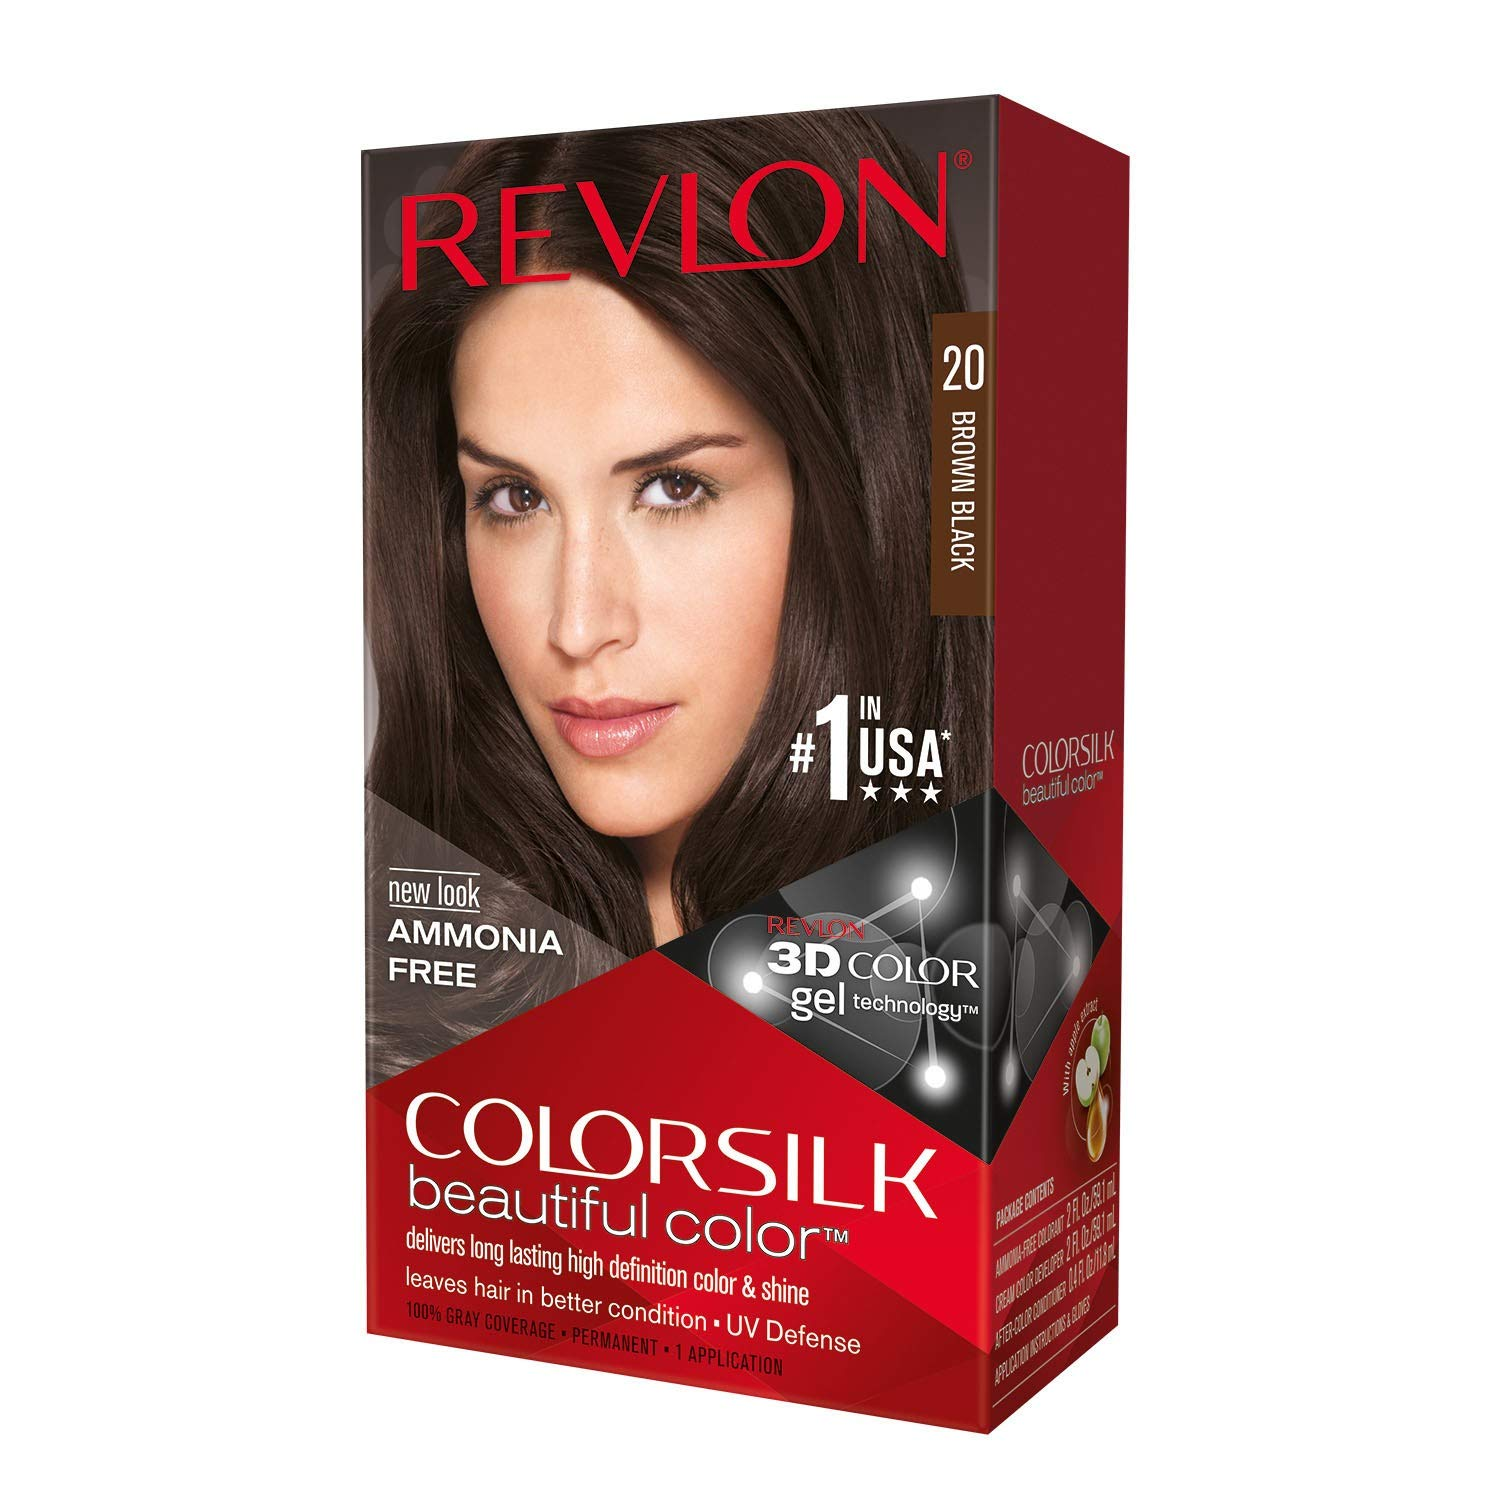 Revlon ColorSilk Hair Color, 20 Brown Black 1 ea (Pack of 5)